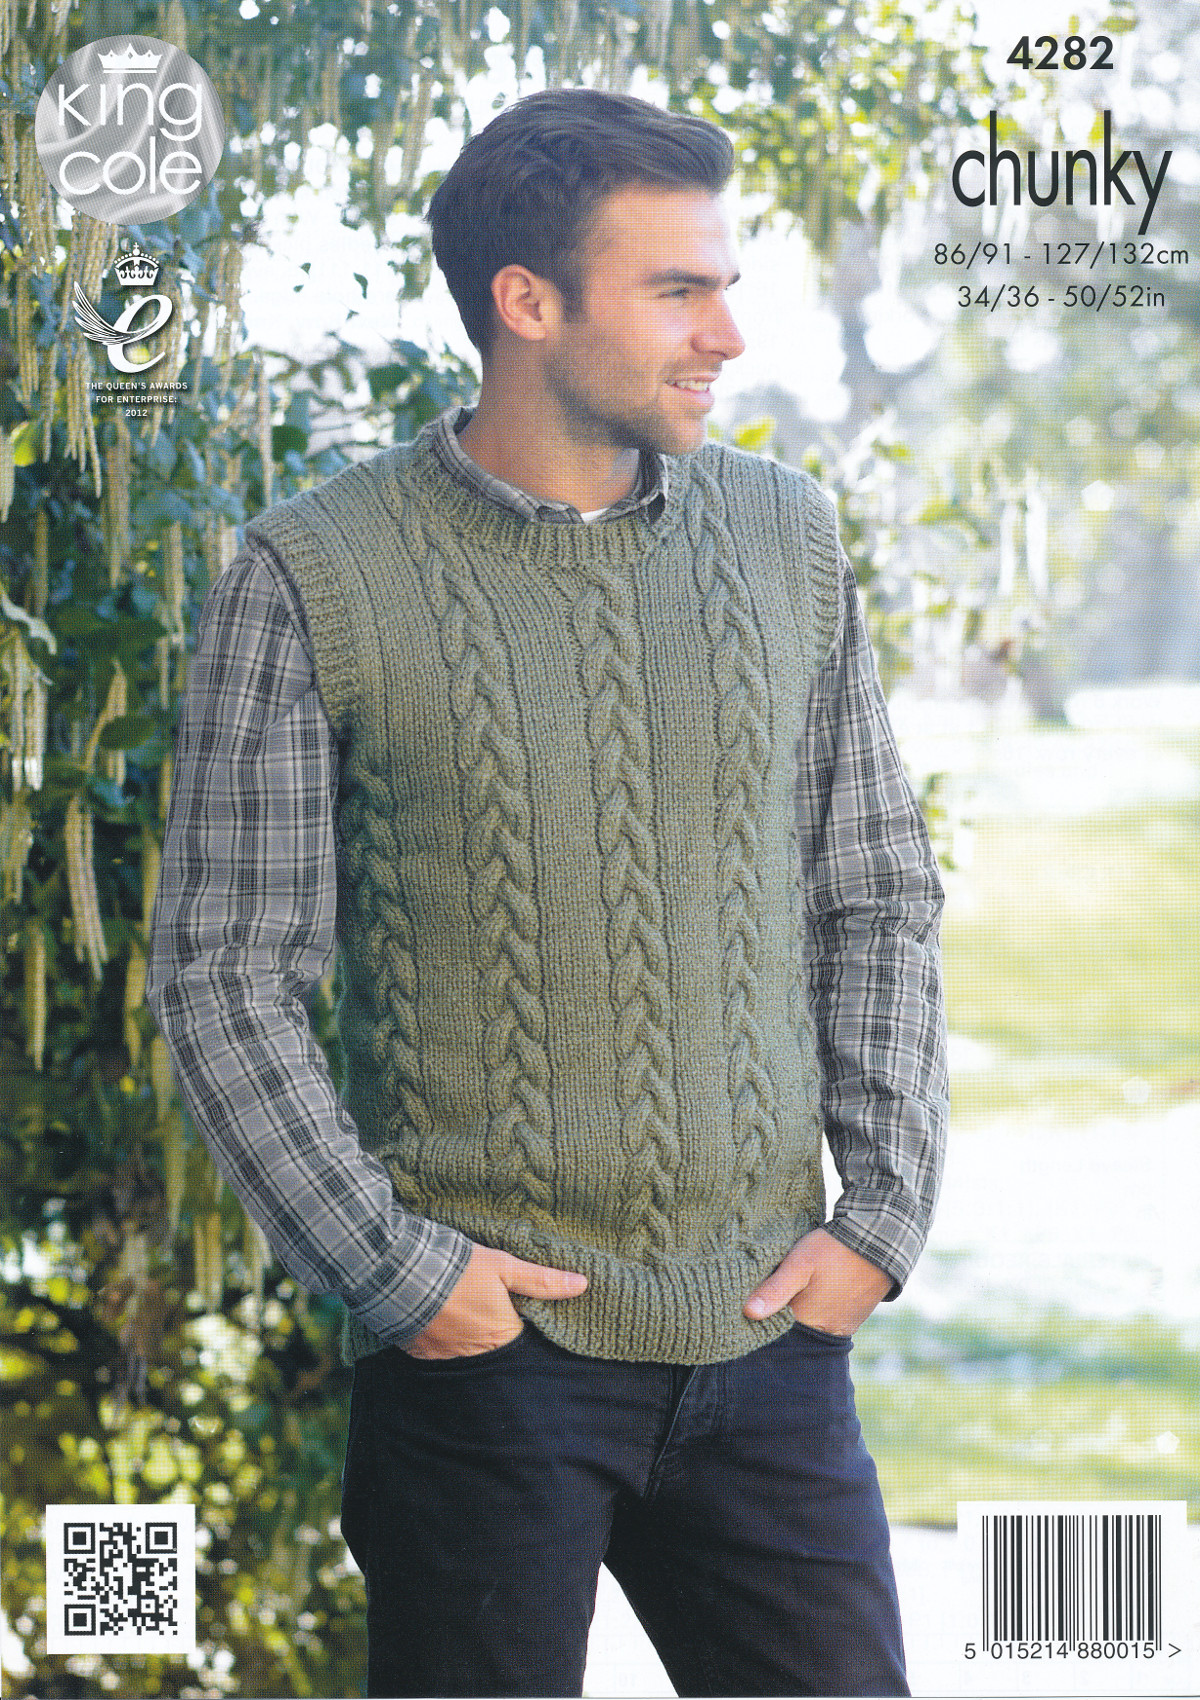 Mens Chunky Knitting Pattern King Cole Cable Knit Sweater Jumper Pullover 428...